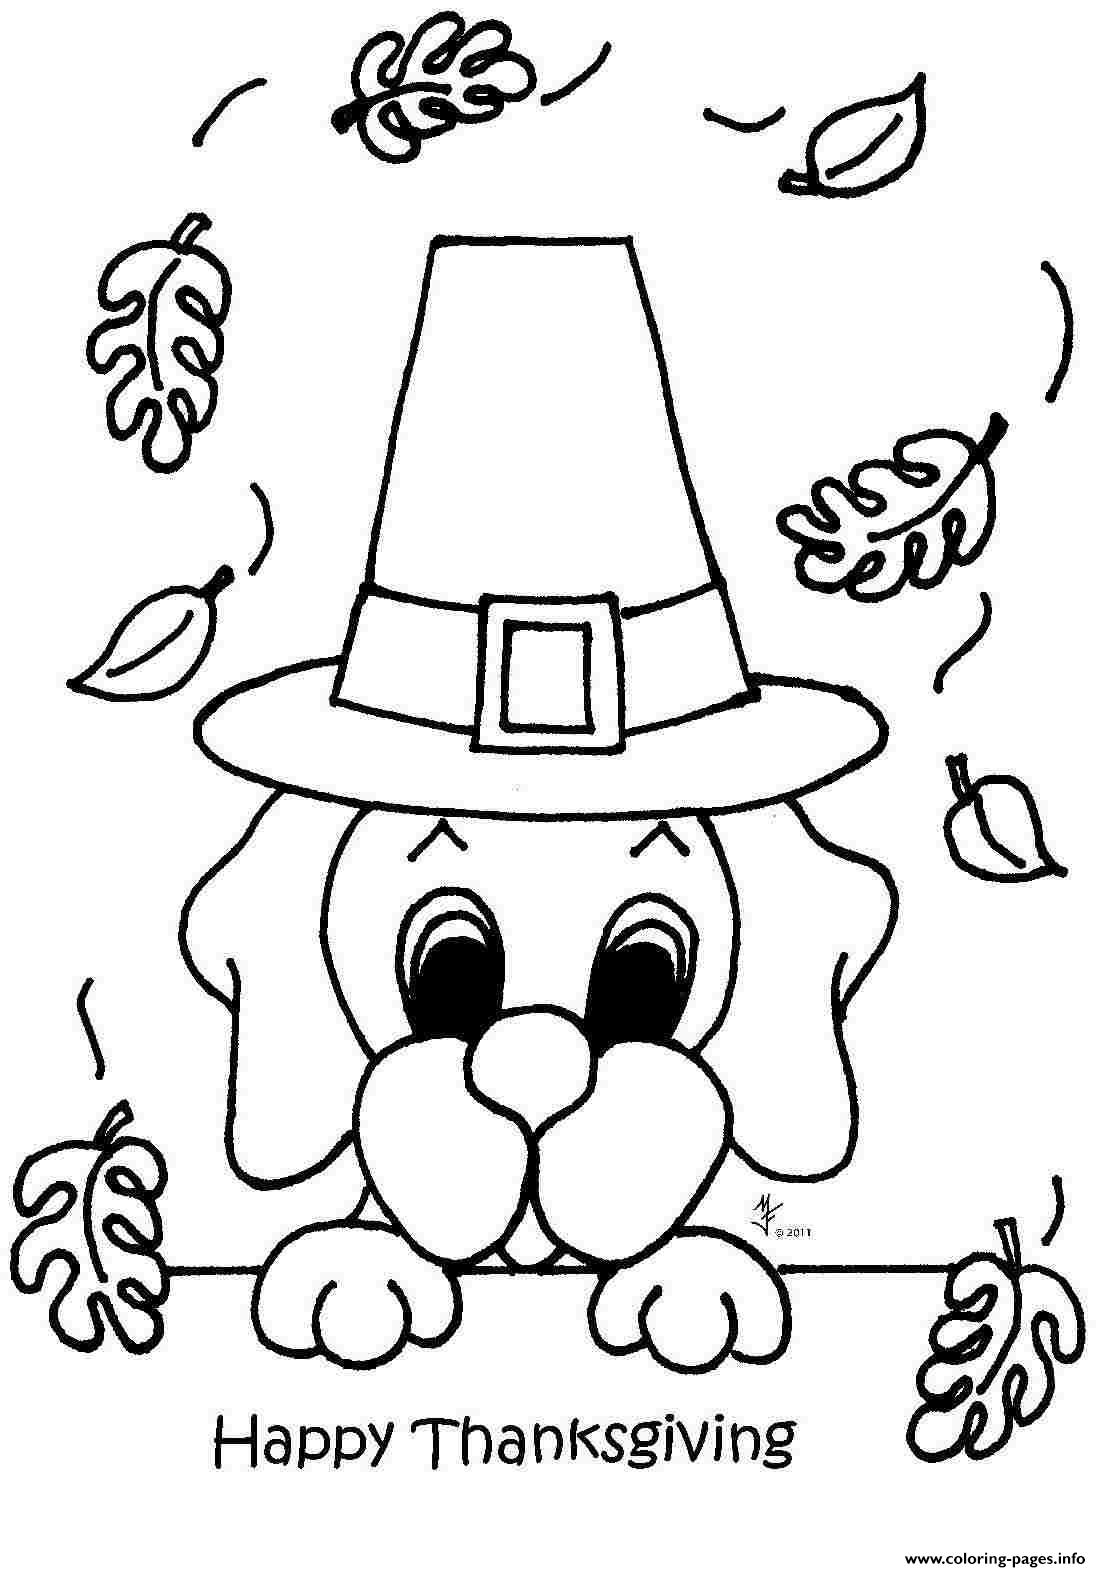 happy thanksgiving cute dog coloring pages